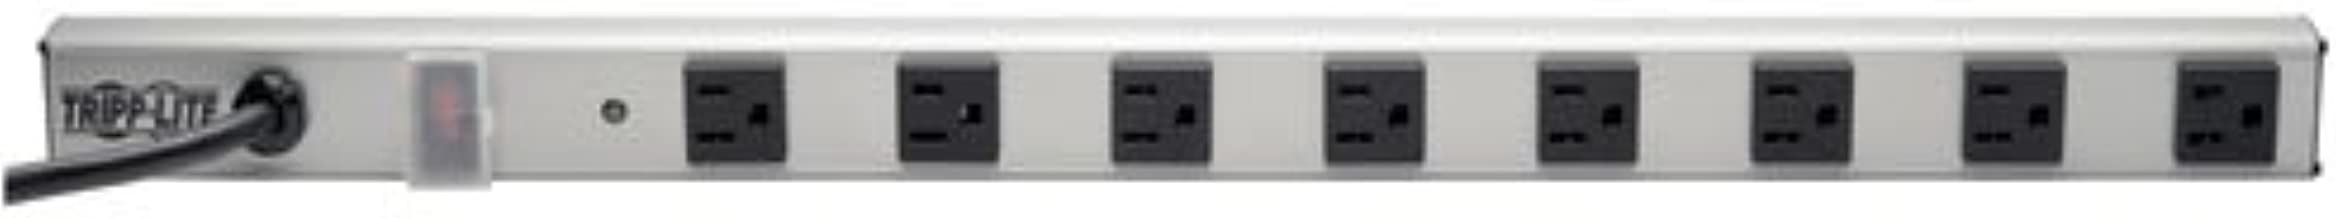 Tripp Lite 8 Outlet Power Strip with Surge Suppression, 6ft. Cord, Metal, 24 in. length, (SS240806)